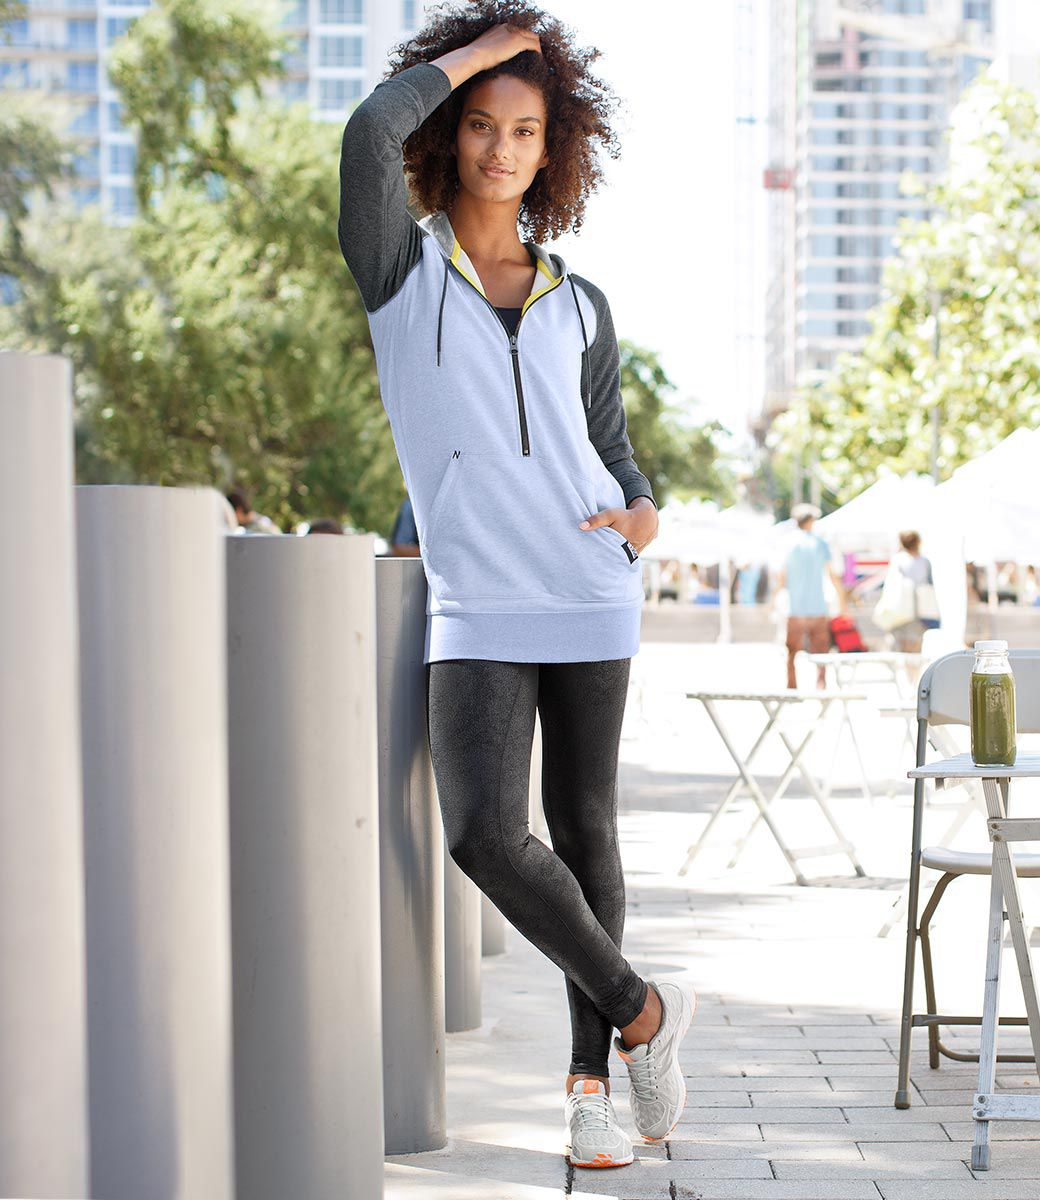 New Balance Womens 1400 and Essentials,